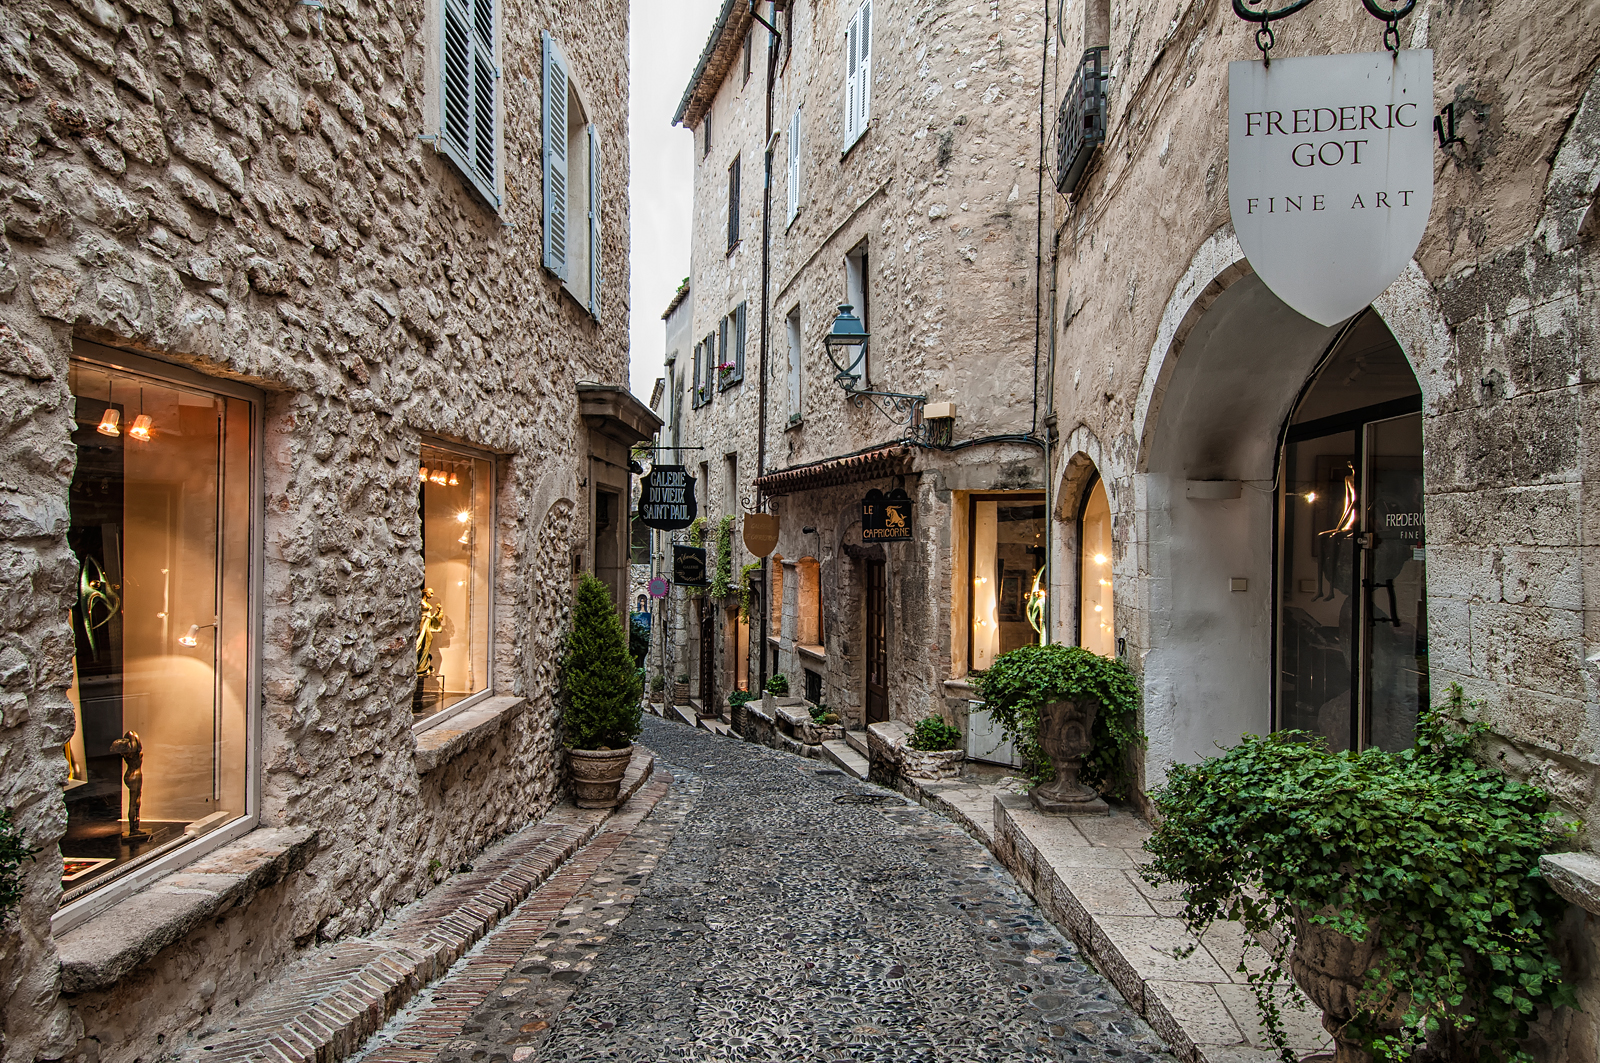 St paul de vence art galleries on rue de grande villa soleil - Office de tourisme de saint paul de vence ...